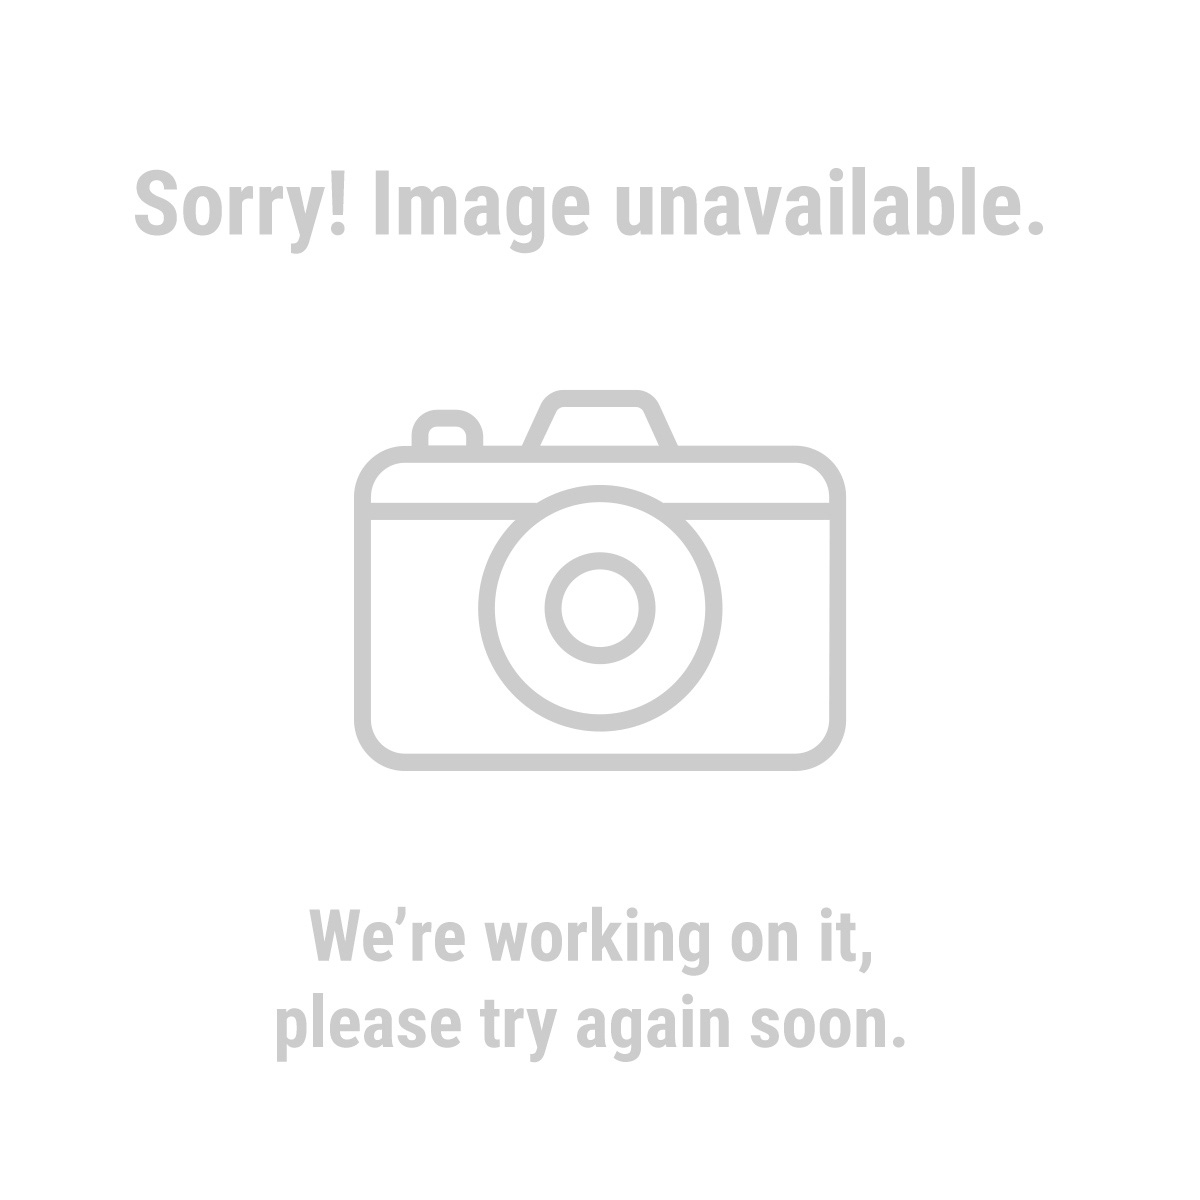 Haul-Master 90154 1195 lb. Capacity 48 in. x 96 in. Heavy Duty Folding Trailer